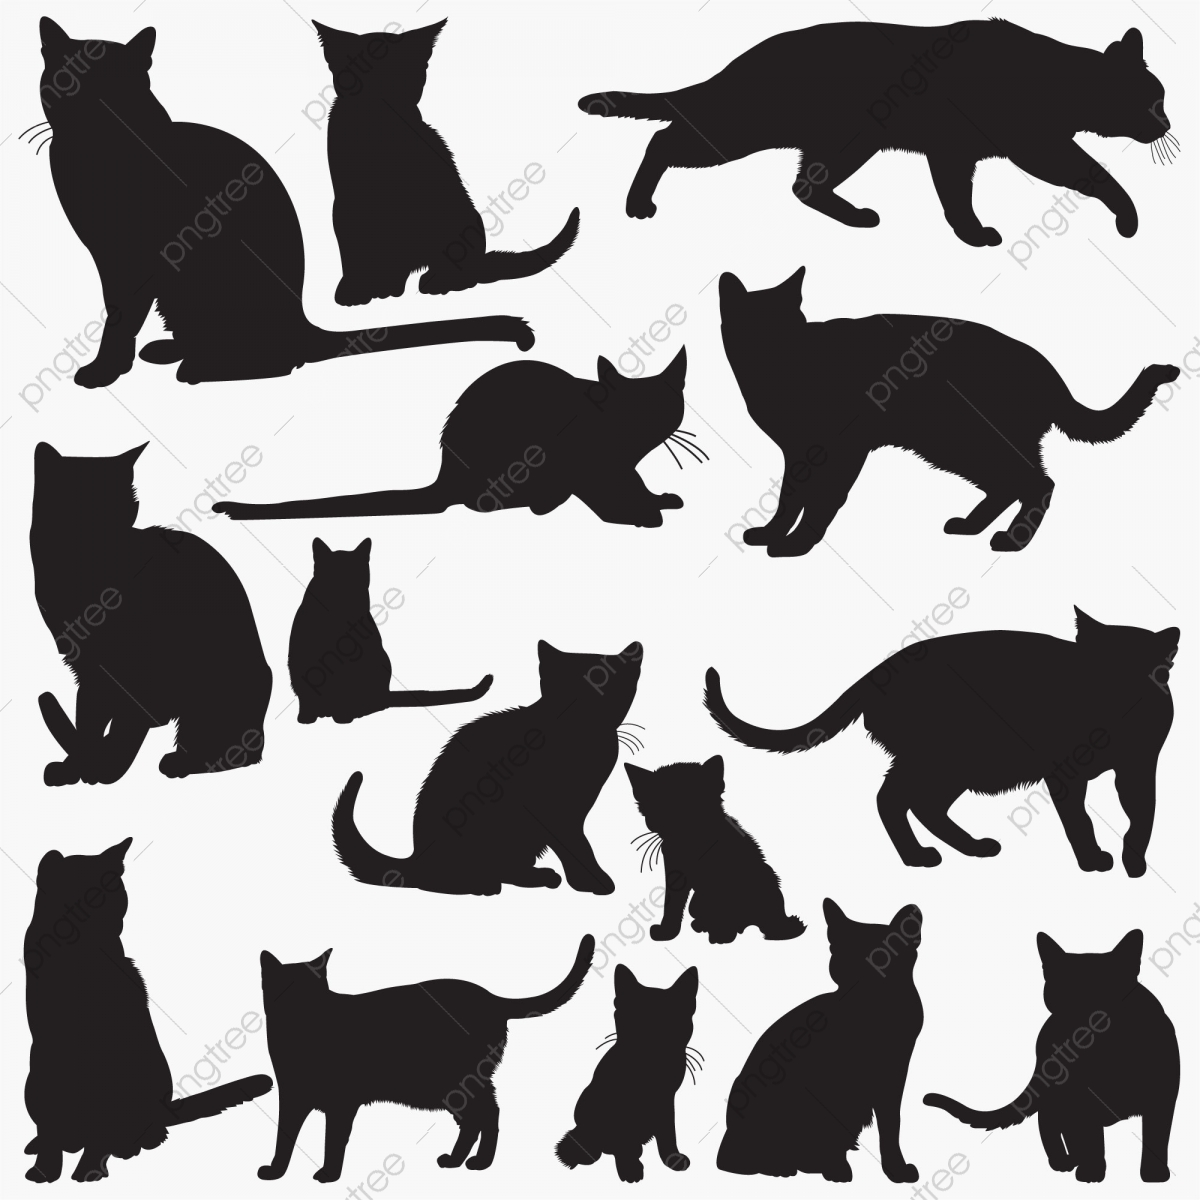 Russian Blue Cat Silhouettes Background Blue British Png And Vector With Transparent Background For Free Download